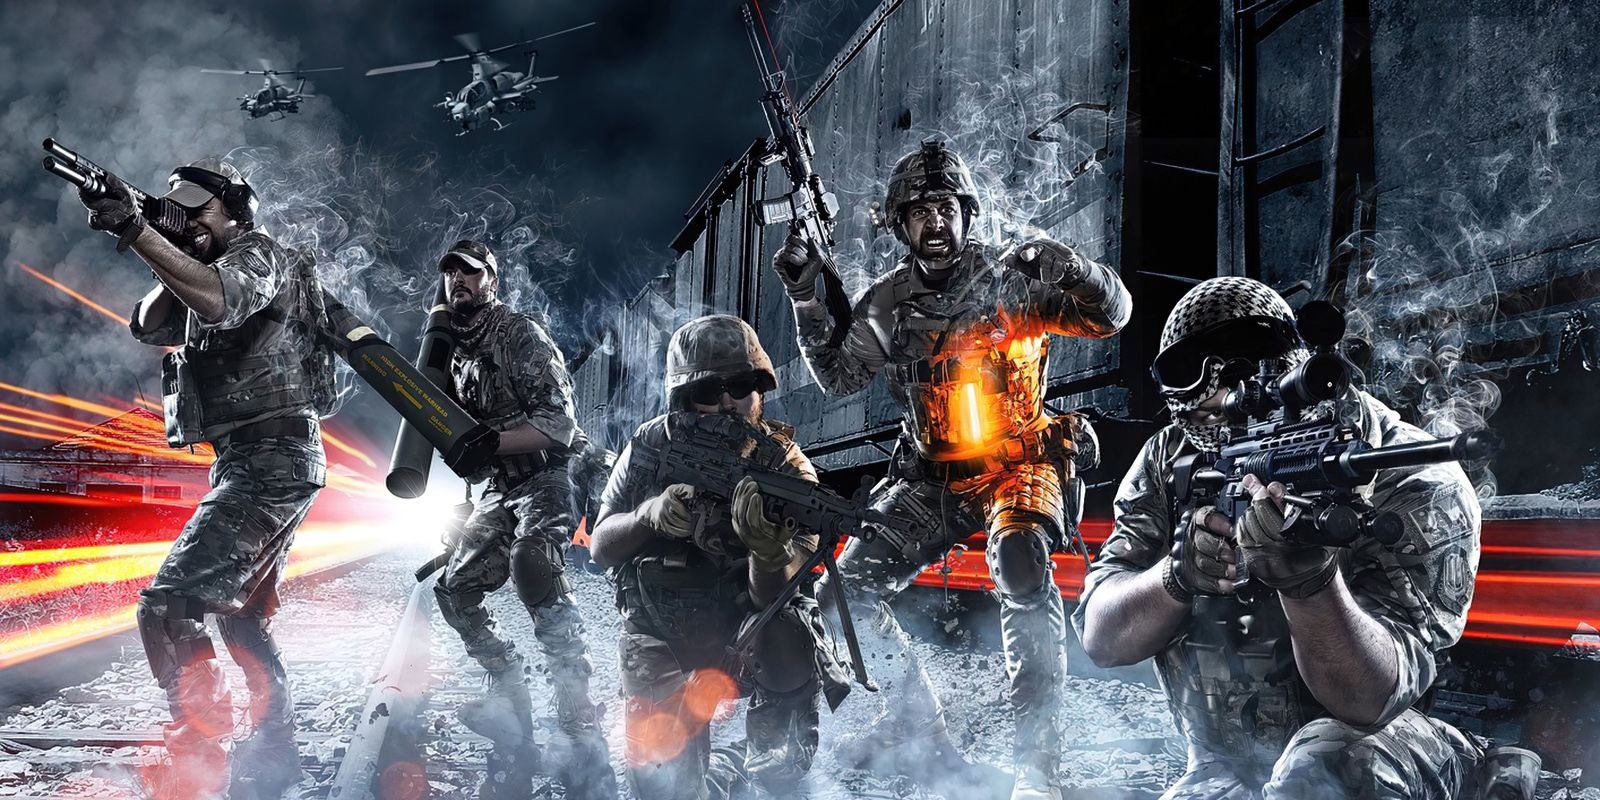 Battlefield 6 May Include a Battle Royale Mode, According To Leak